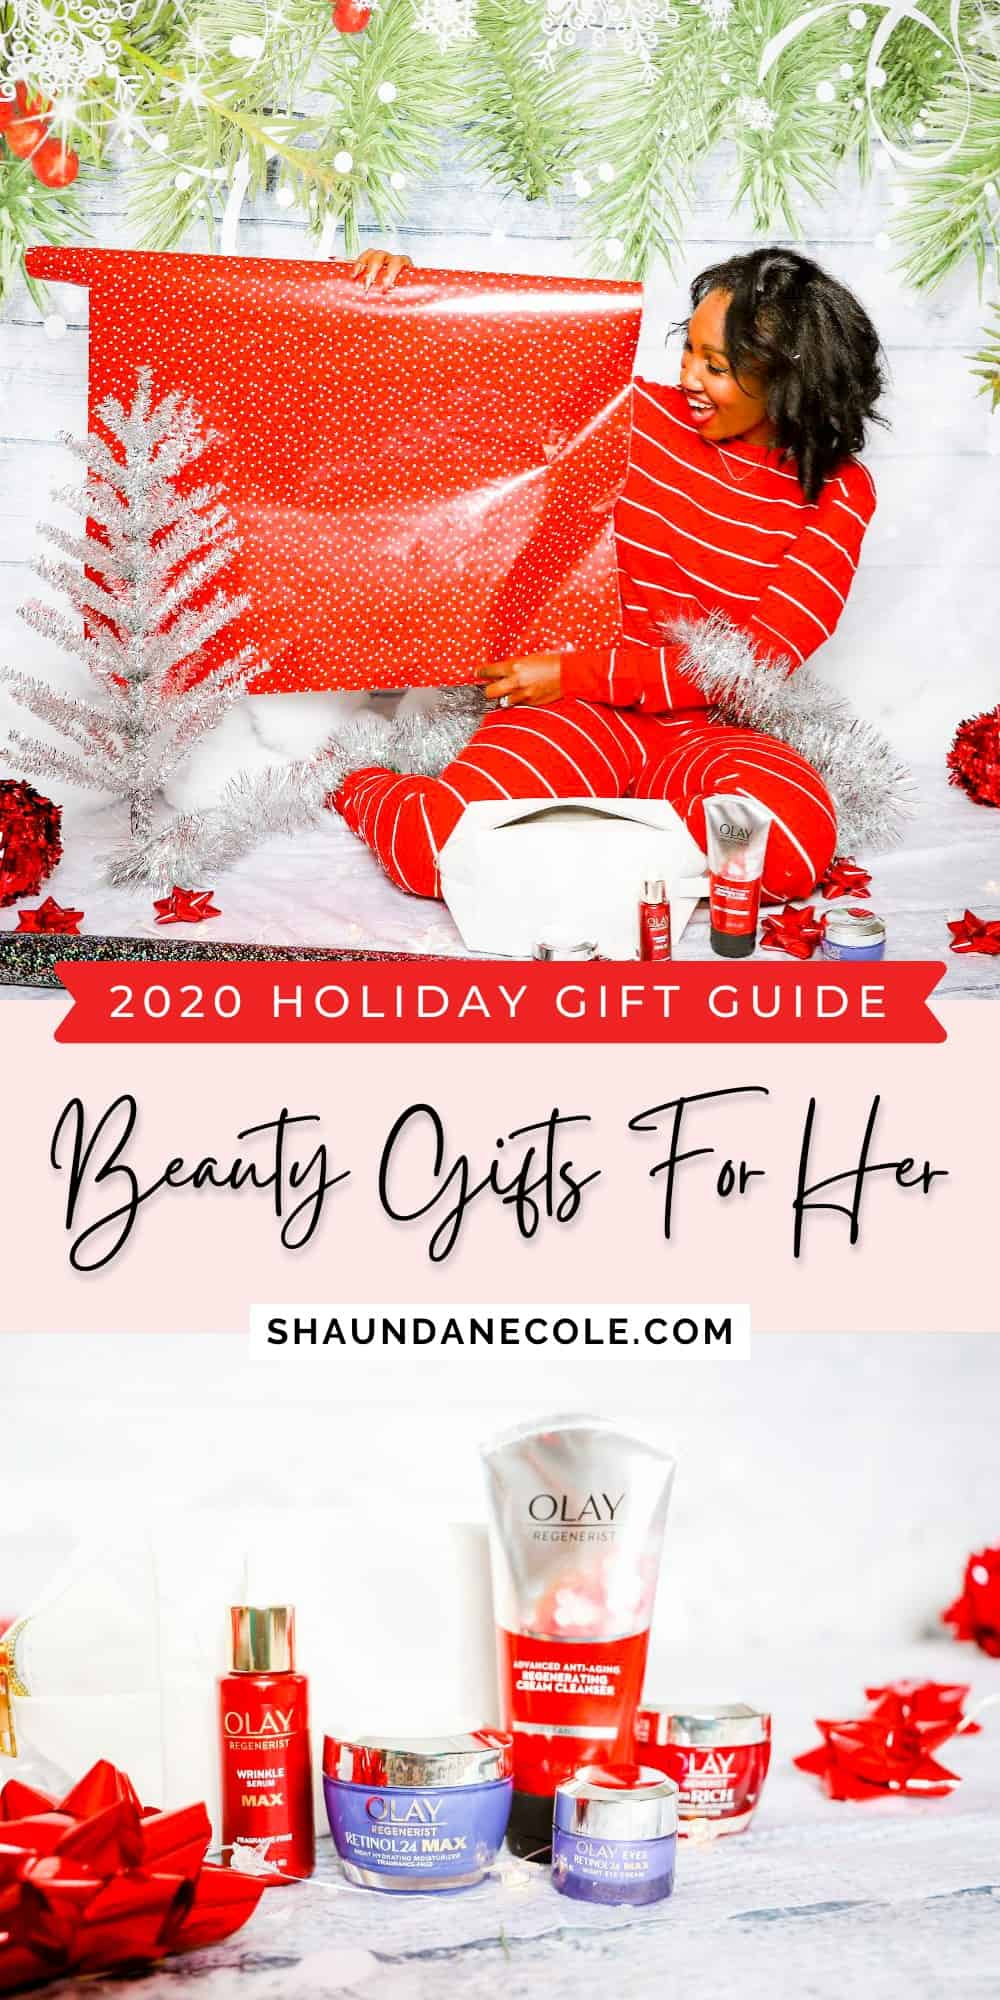 All Things Beauty 2020 Christmas Gift Guide Best Beauty Gifts For Her Olay Regenerist Skin Care